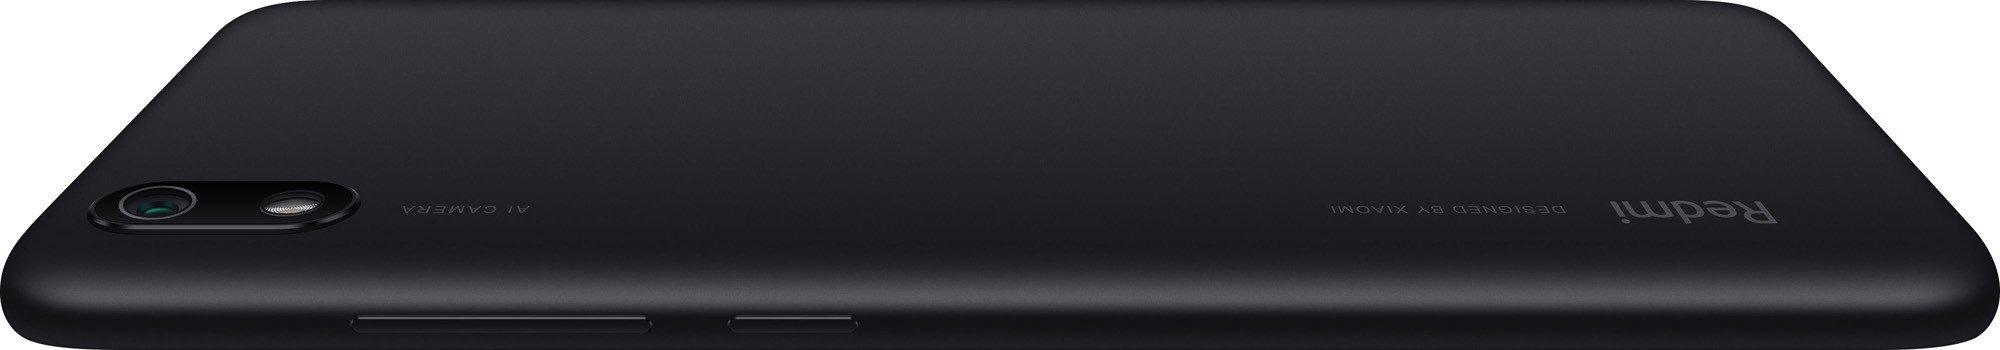 Смартфон Xiaomi Redmi 7A 2/32Gb Black: Фото 8